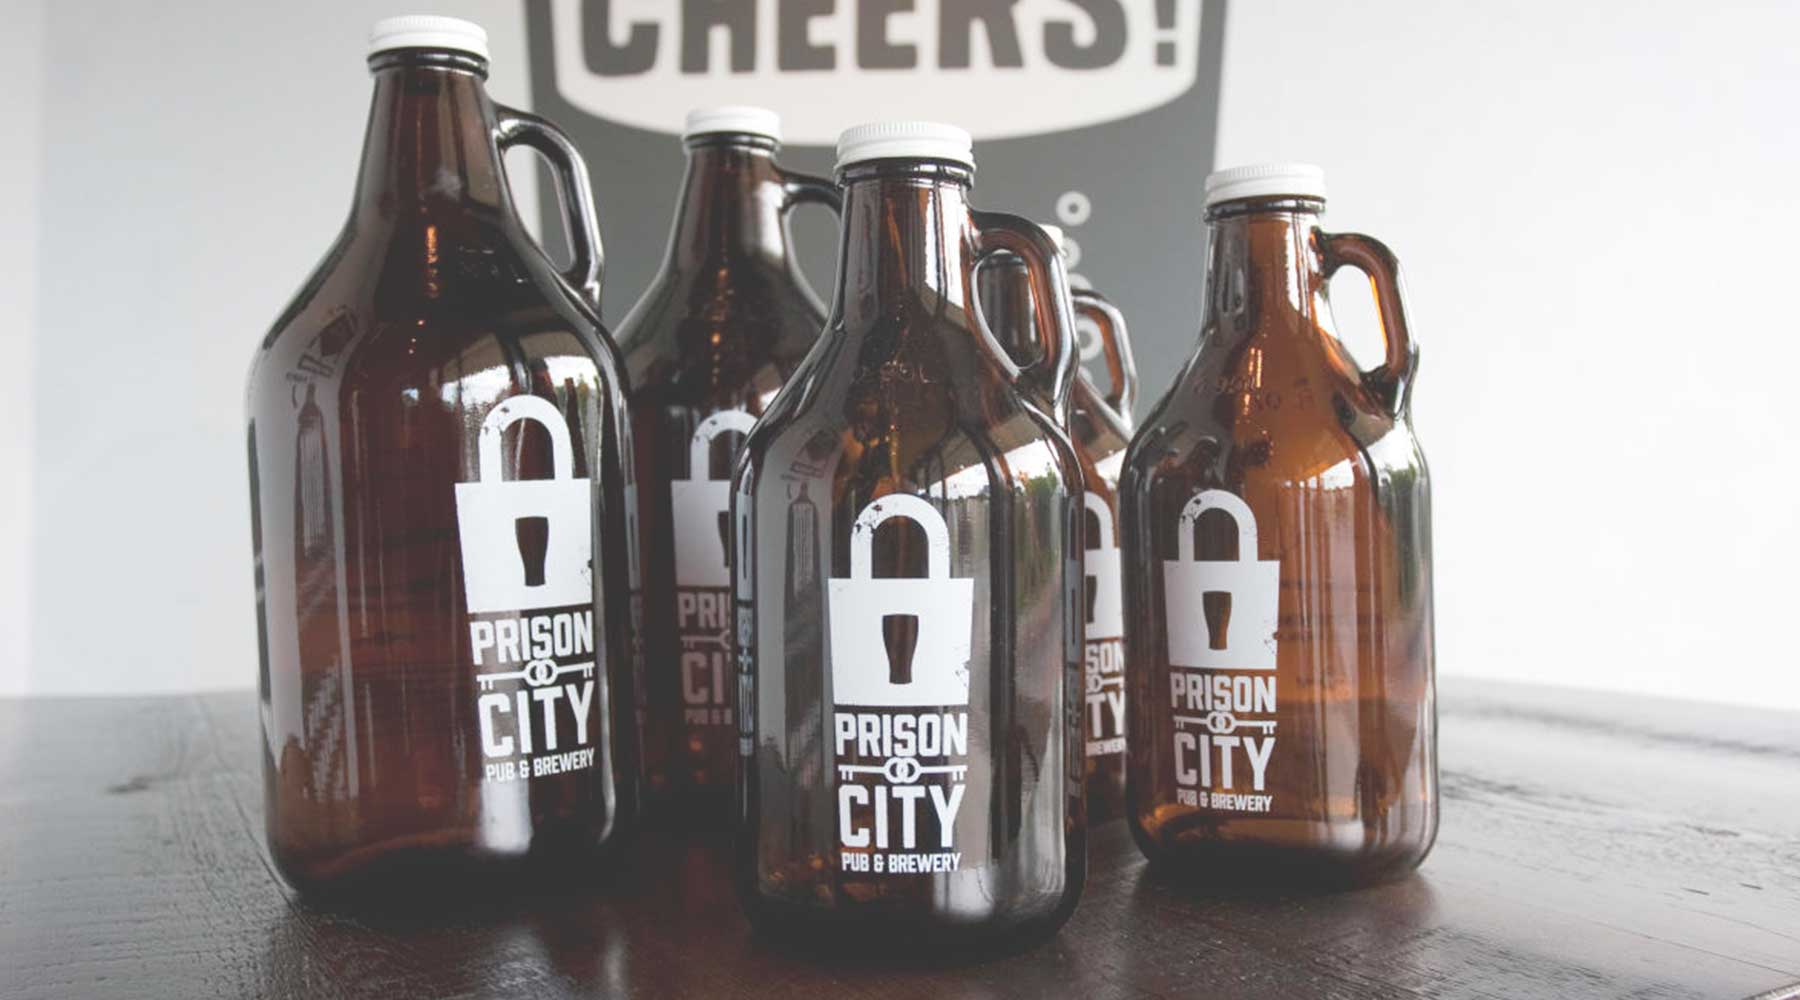 Prison City Pub and Brewery | Just Wine